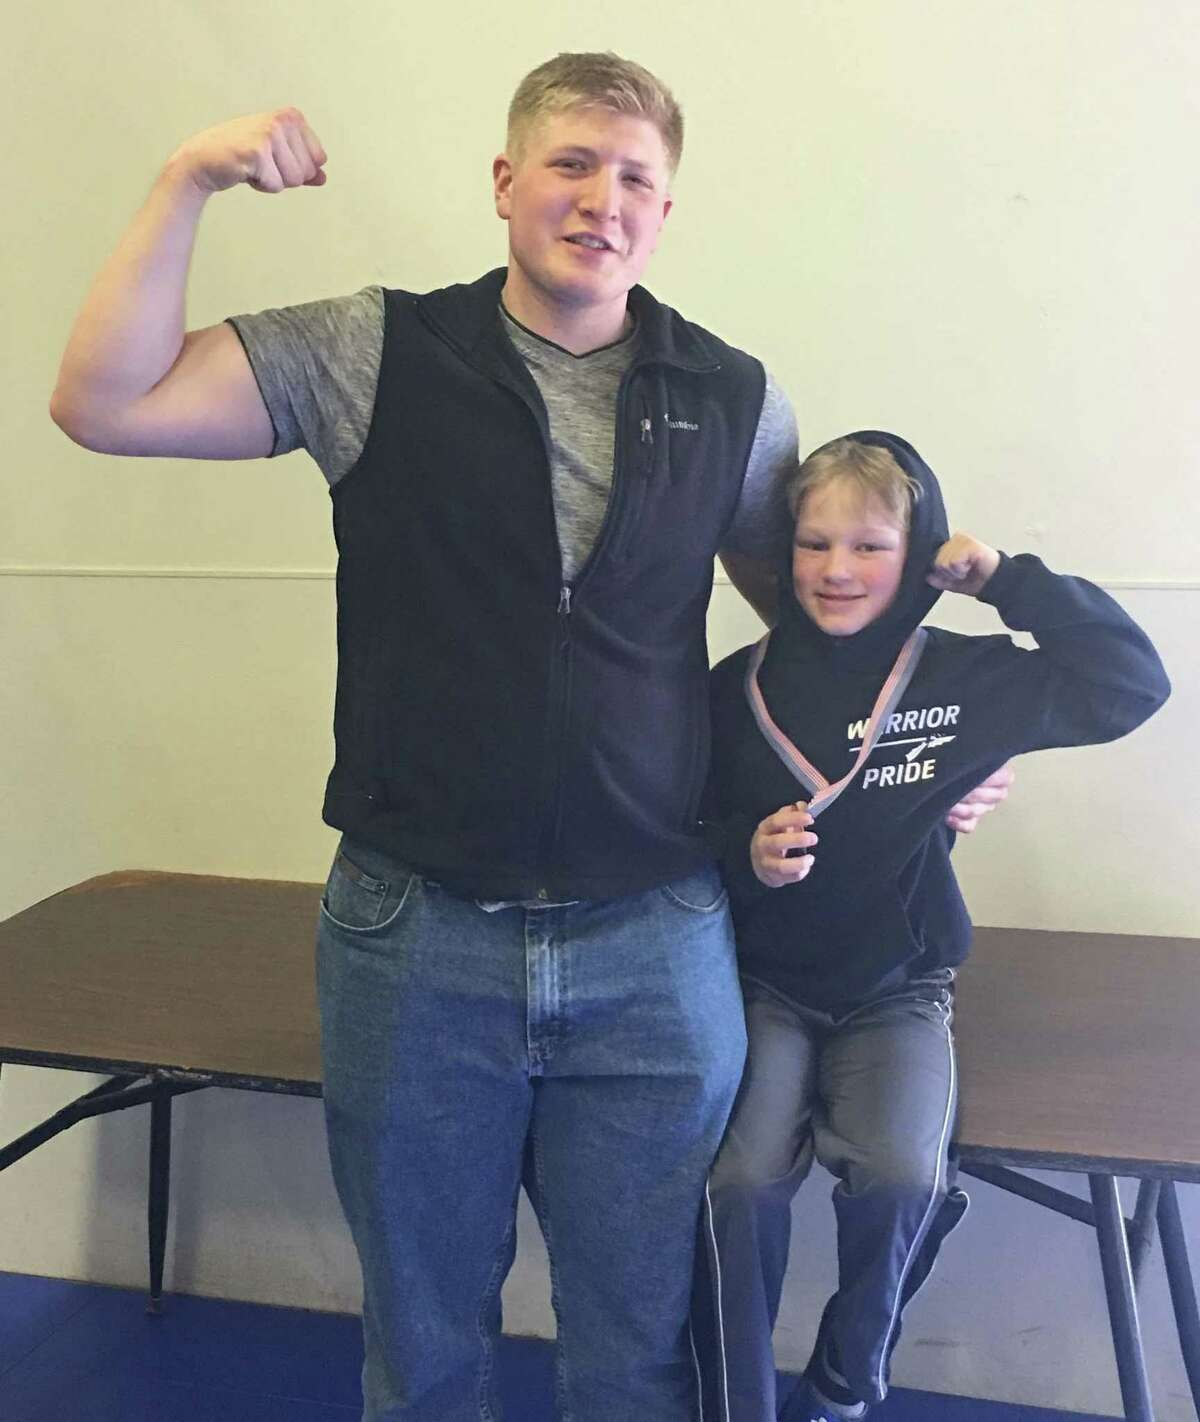 eckett Simmons of Wilton, pictured above right with Coach Sean DeJager, of Wilton Youth Wrestling.